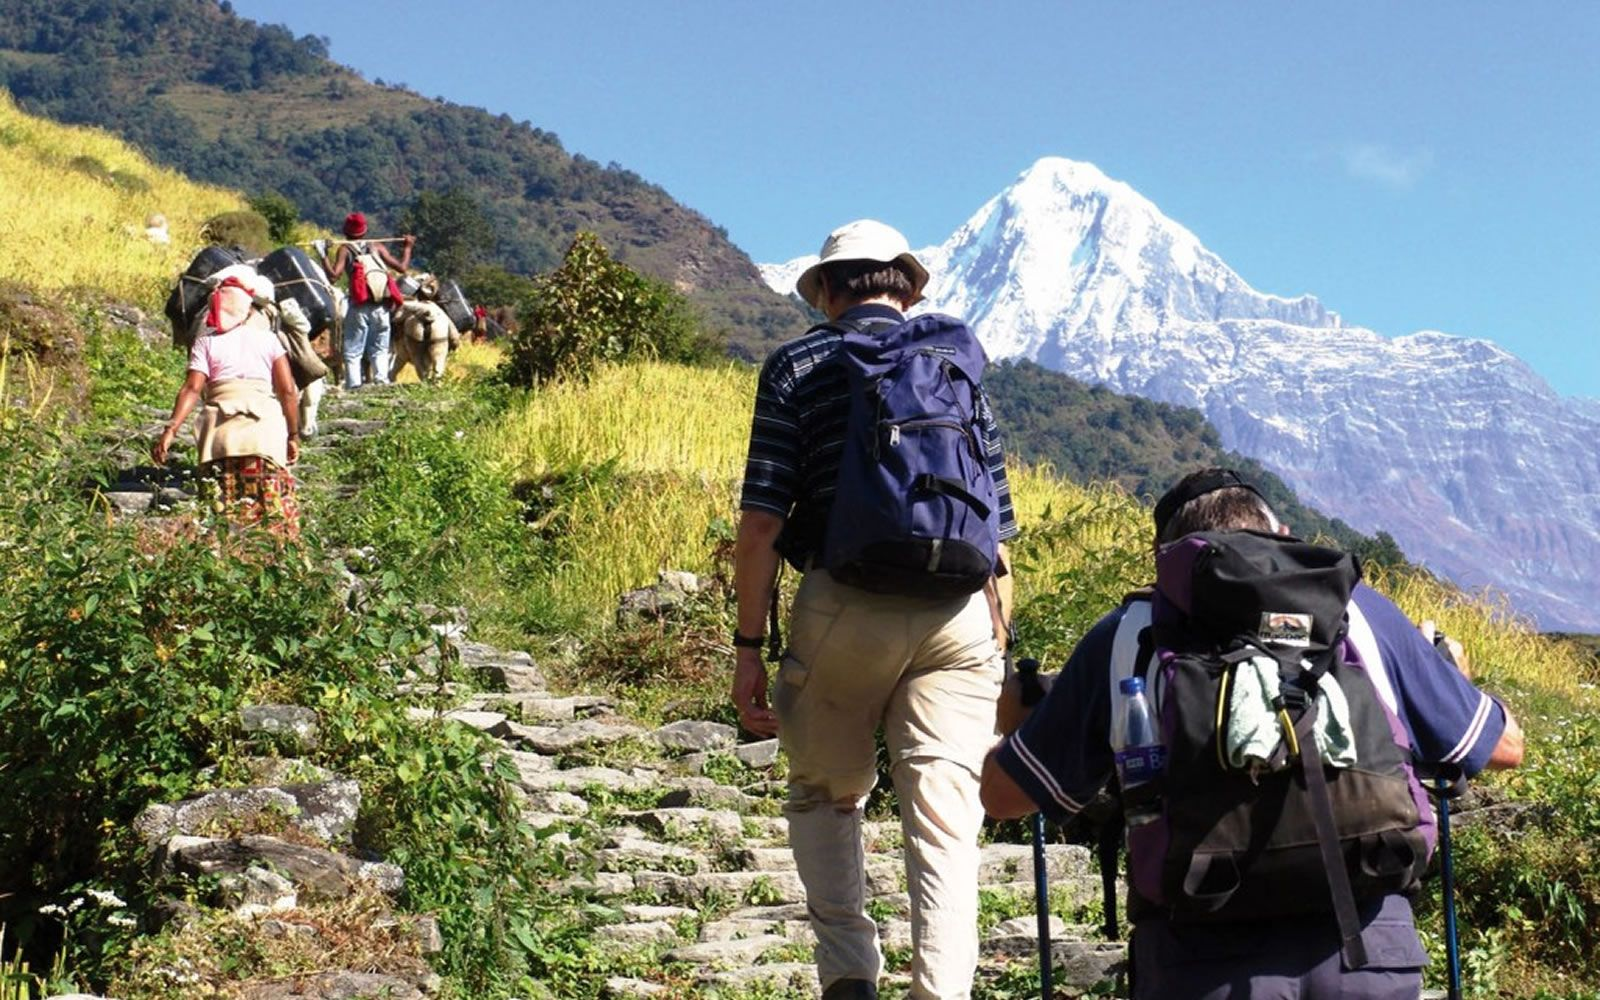 Top Four Reasons for Choosing India as Travel Destination